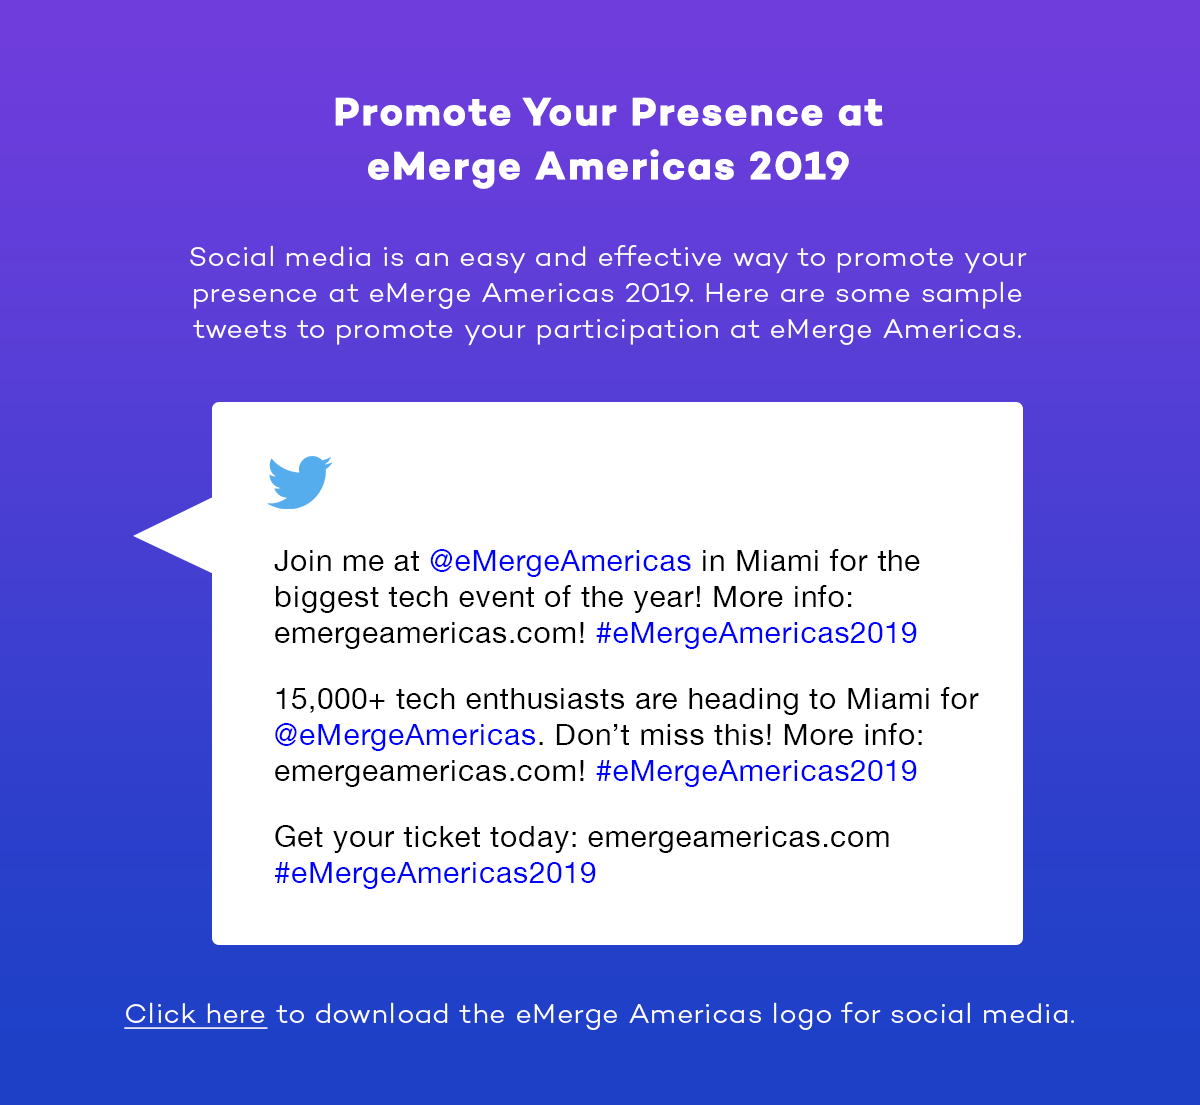 Promote your presence